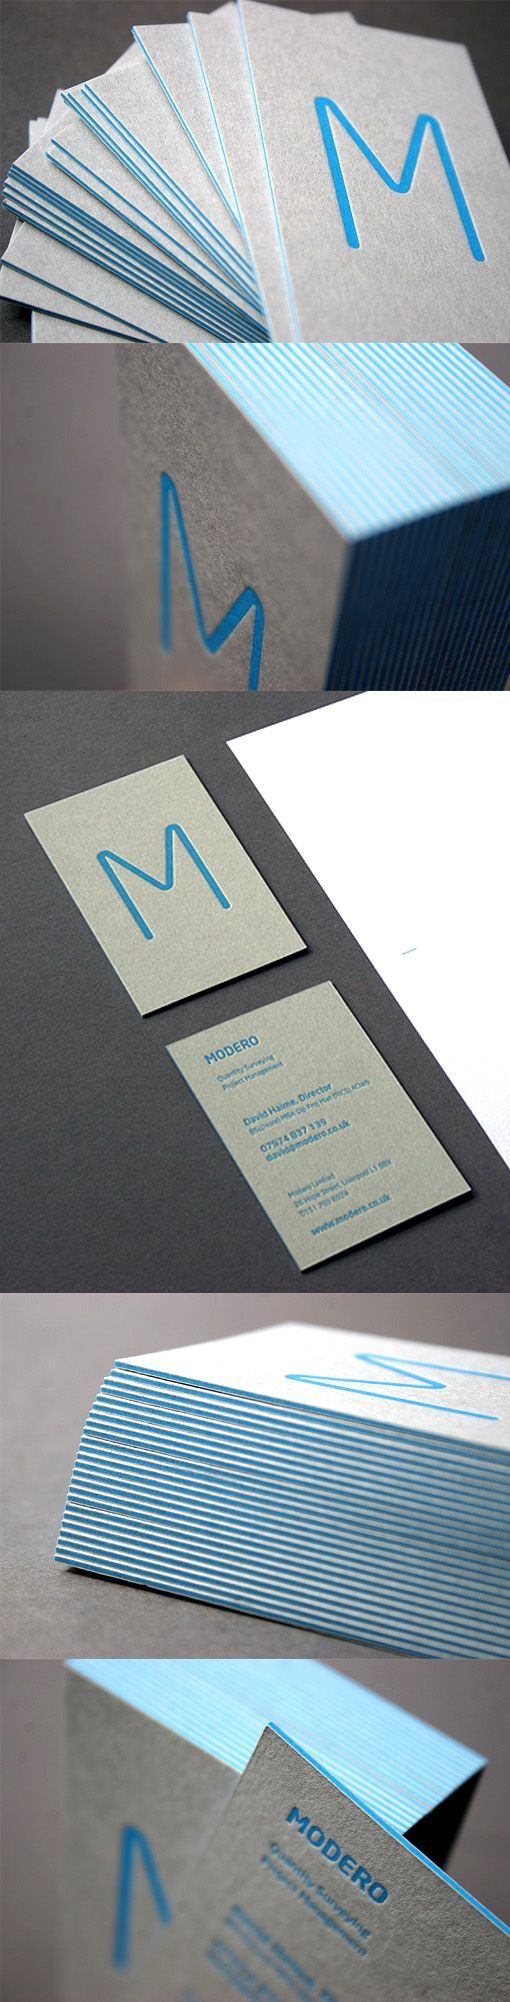 10 best Matt / Shine Business Card Printing images on Pinterest ...